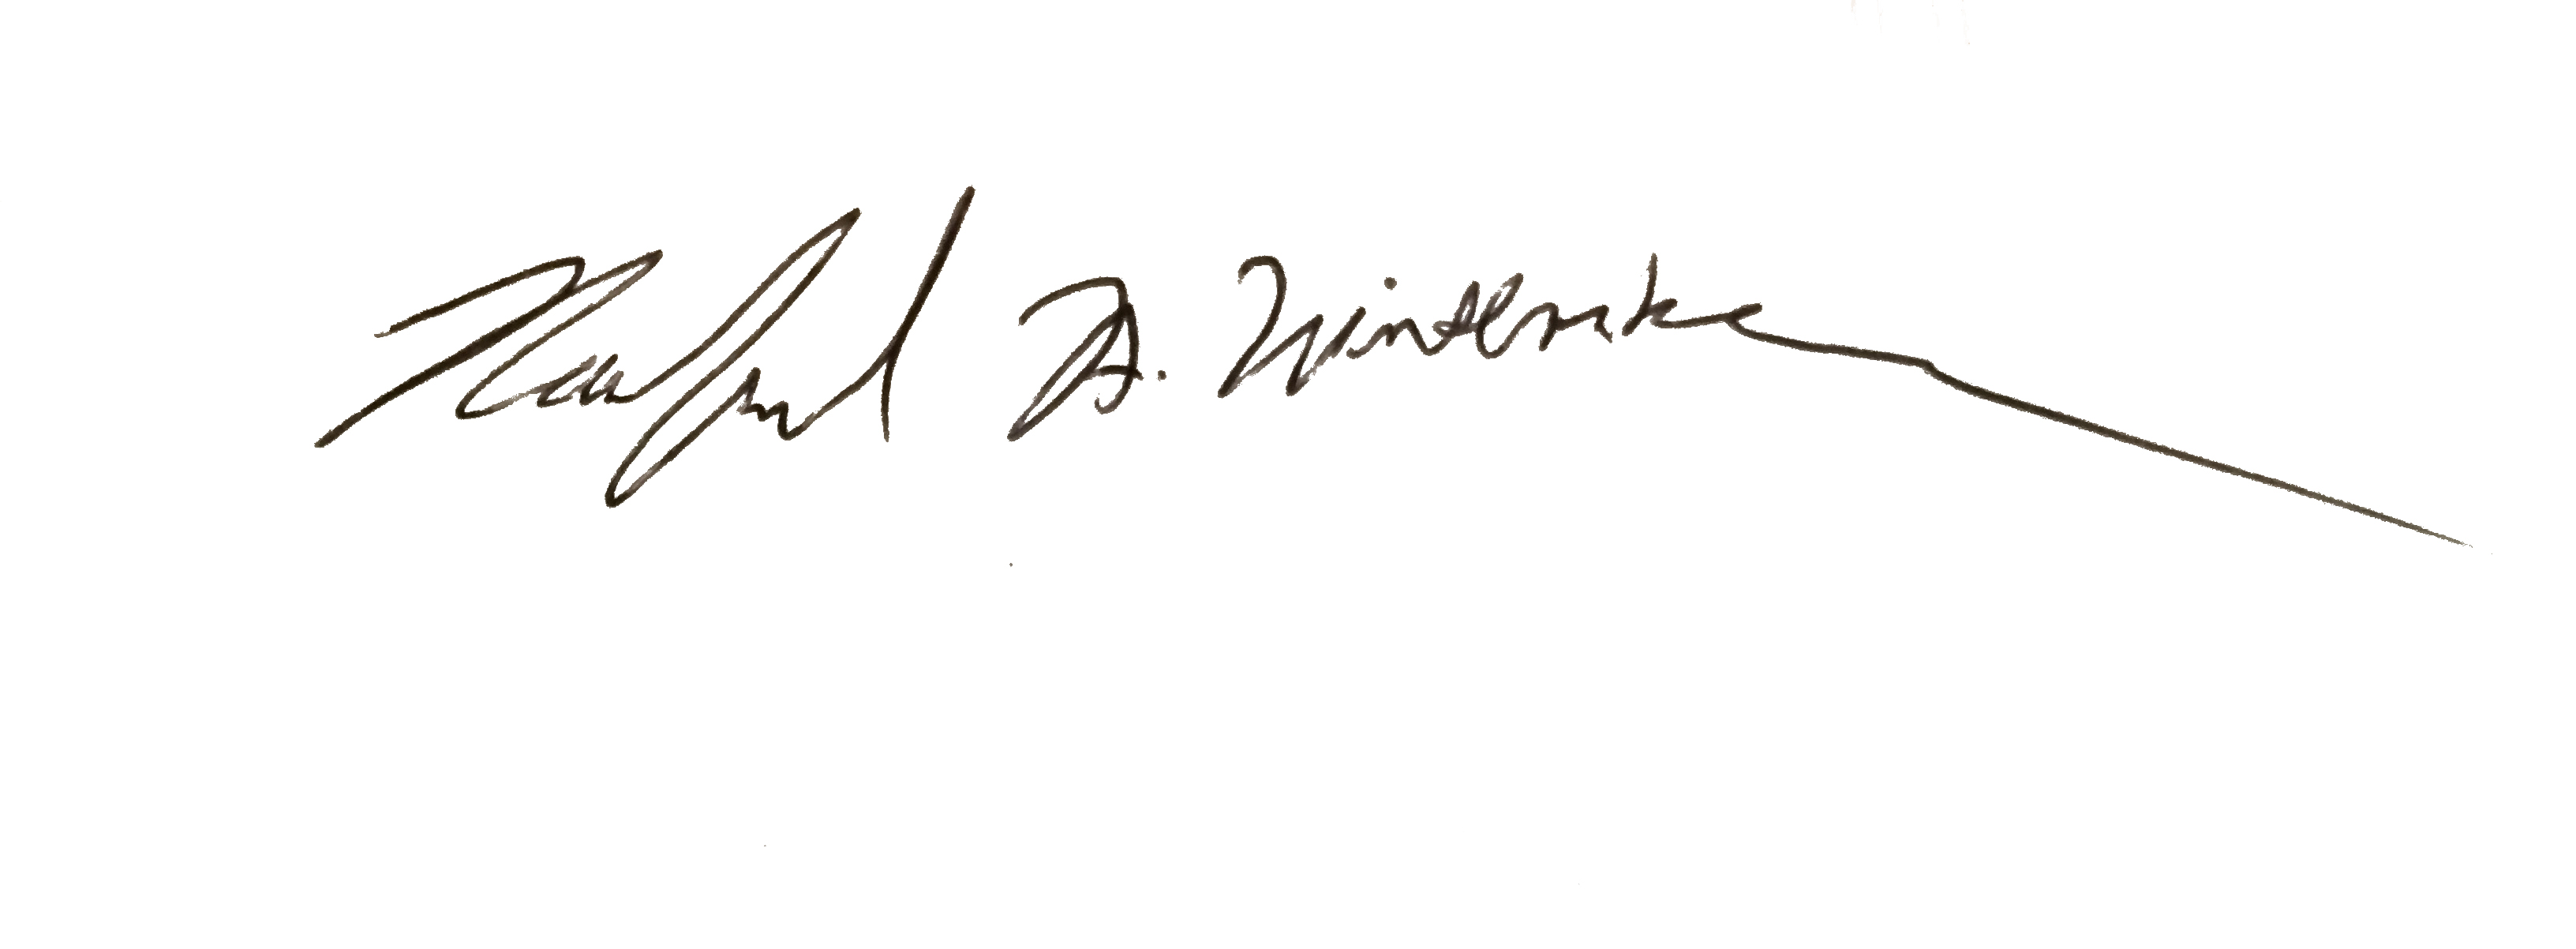 Rachel Wintemberg's Signature